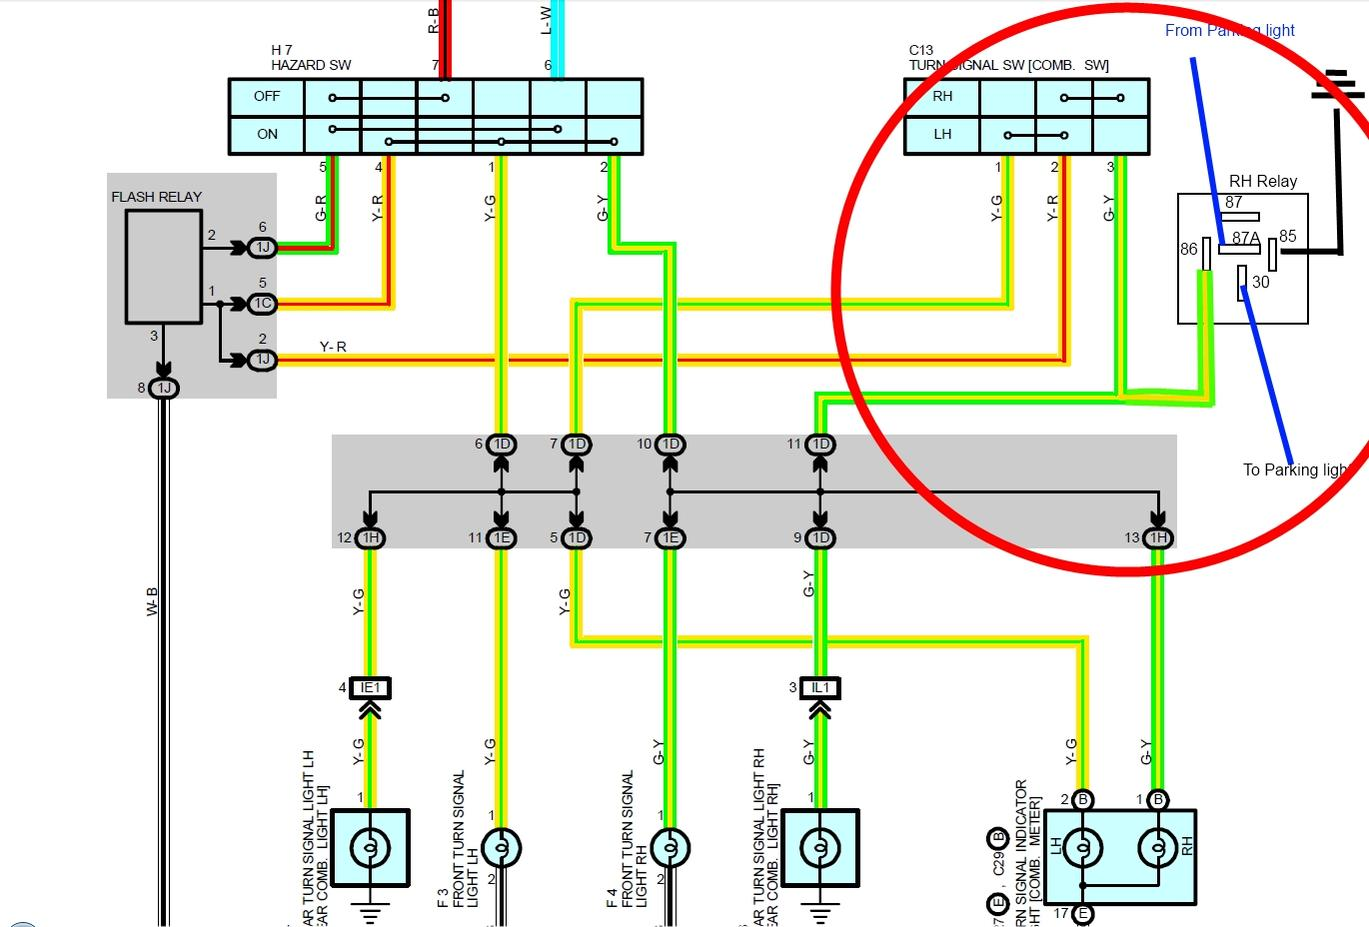 TF_3113] Tacoma Trailer Wiring Harness Diagram Get Free Image About WiringTixat Ostom Rosz Argu Loida Unec Cette Mohammedshrine Librar Wiring 101